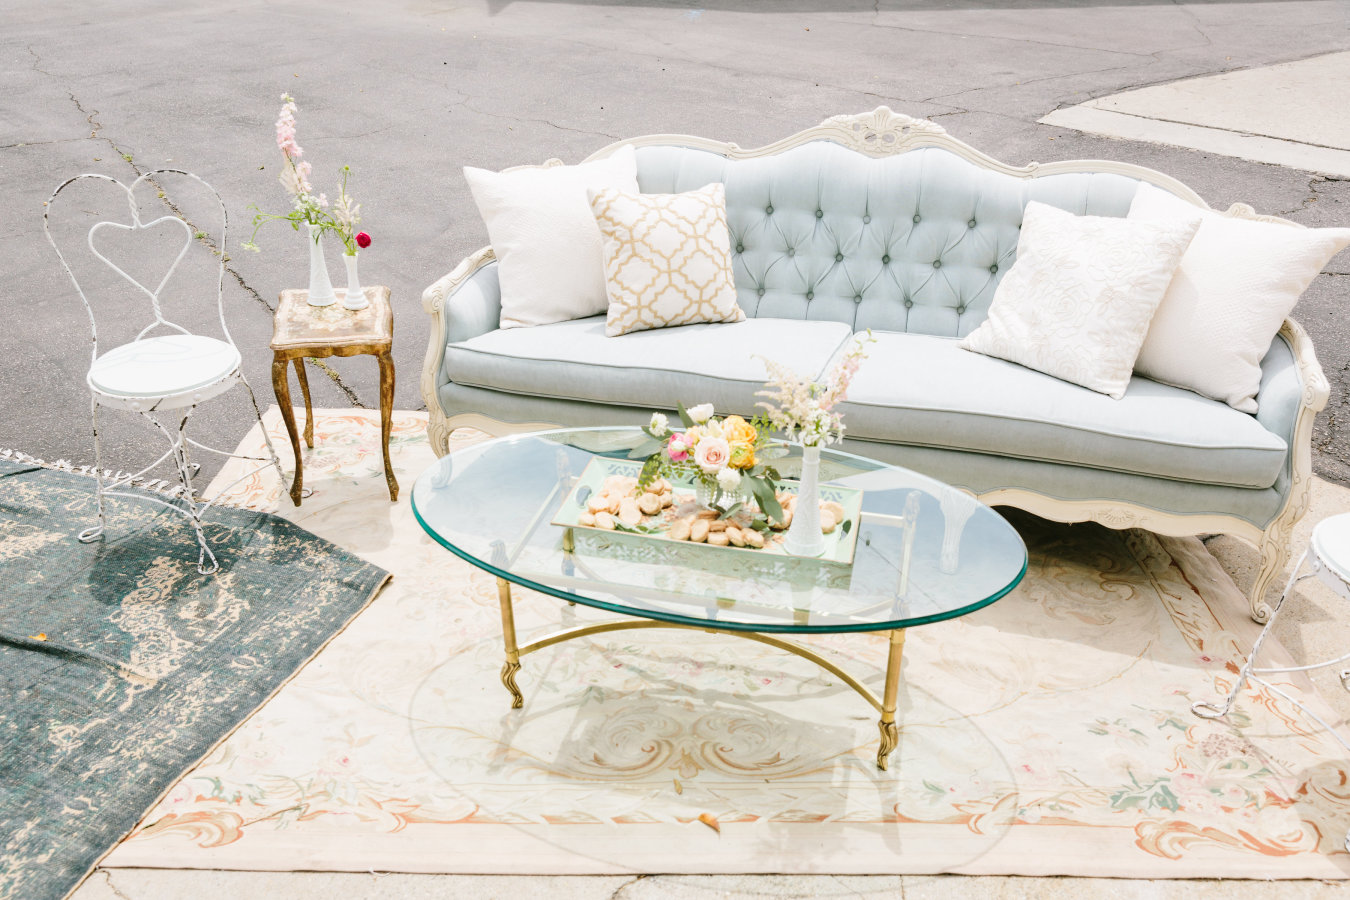 WeddWedding lounge decor, wedding styling, wedding stylist wedding planner, UK wedding planner, expert wedding tipsing lounges, wedding styling, wedding stylist wedding planner, UK wedding planner, expert wedding tips